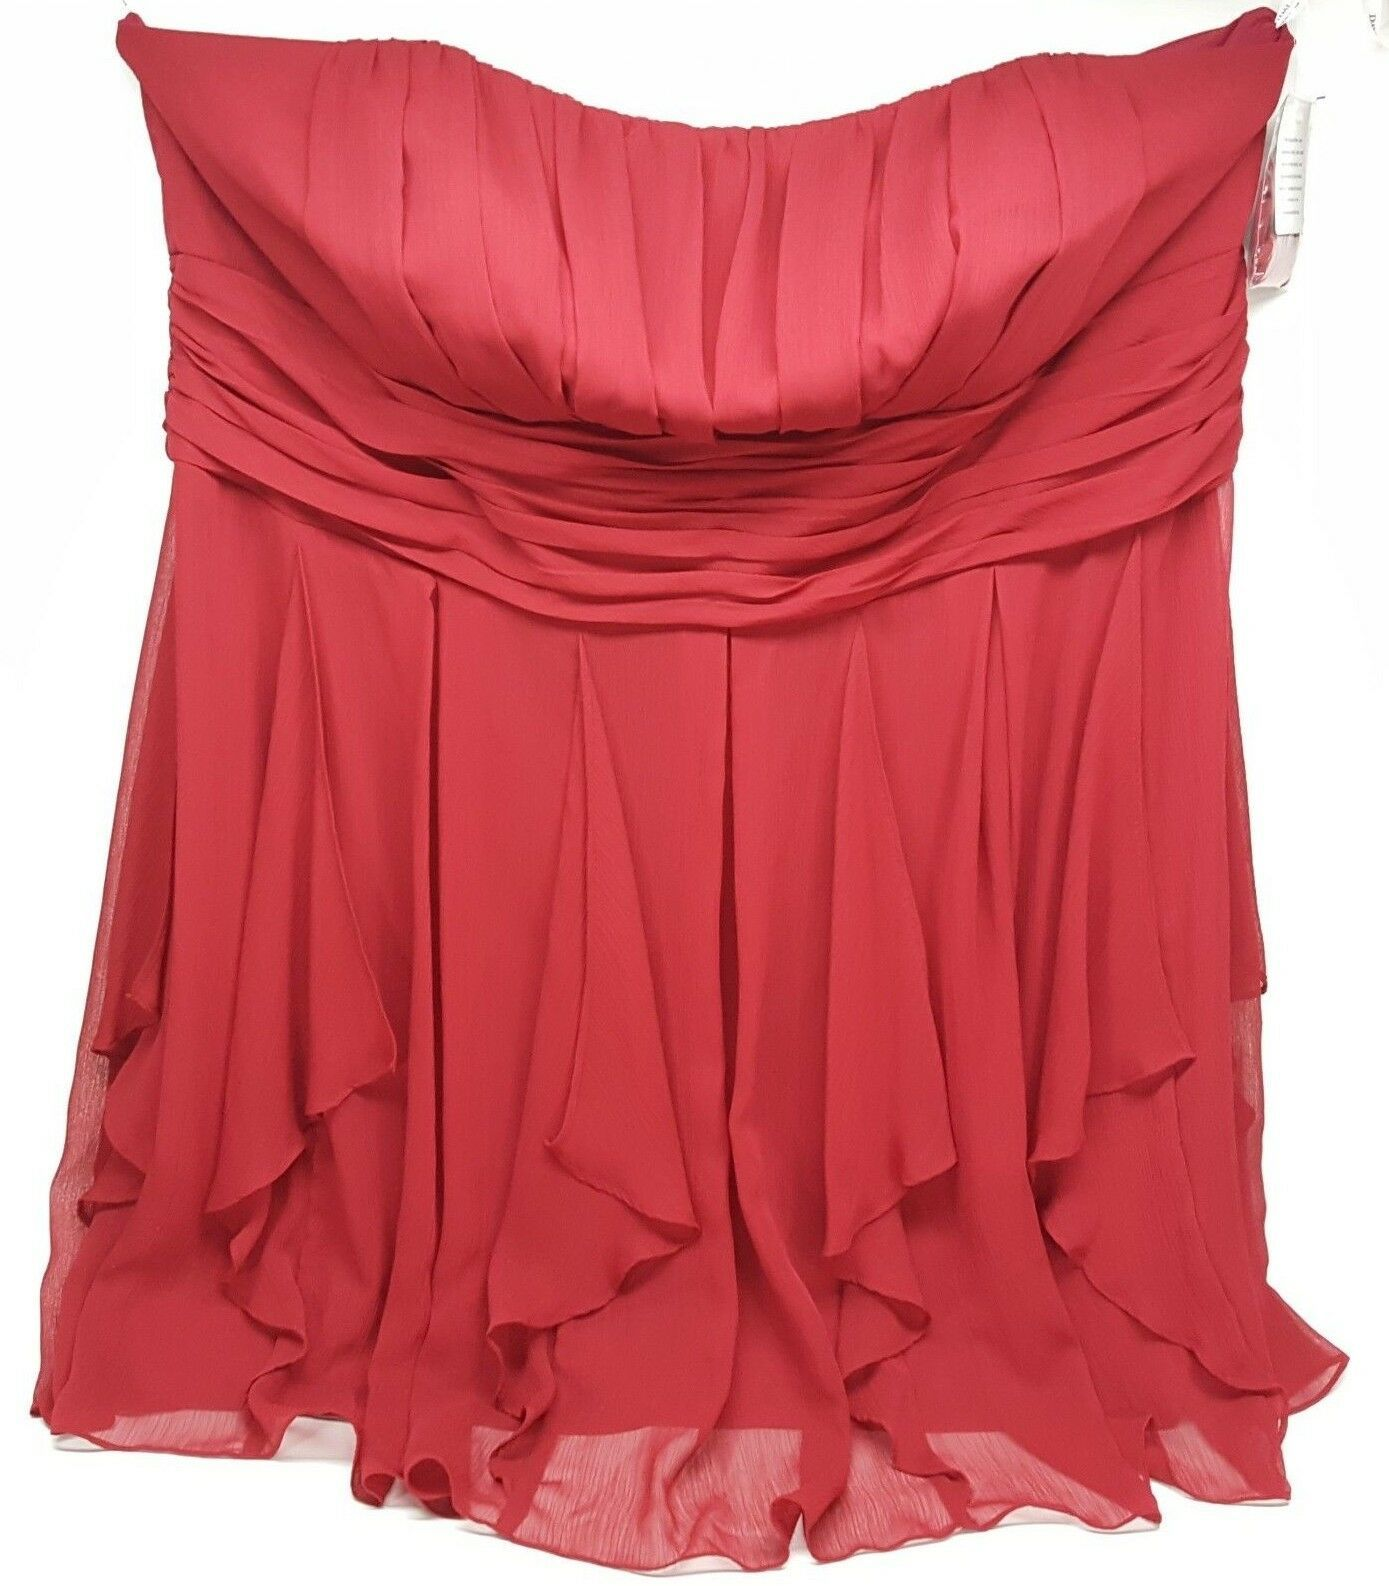 Primary image for David's Bridal Bridesmaid Size 26 Strapless Crinkle Chiffon Ruffle Skirt Dress